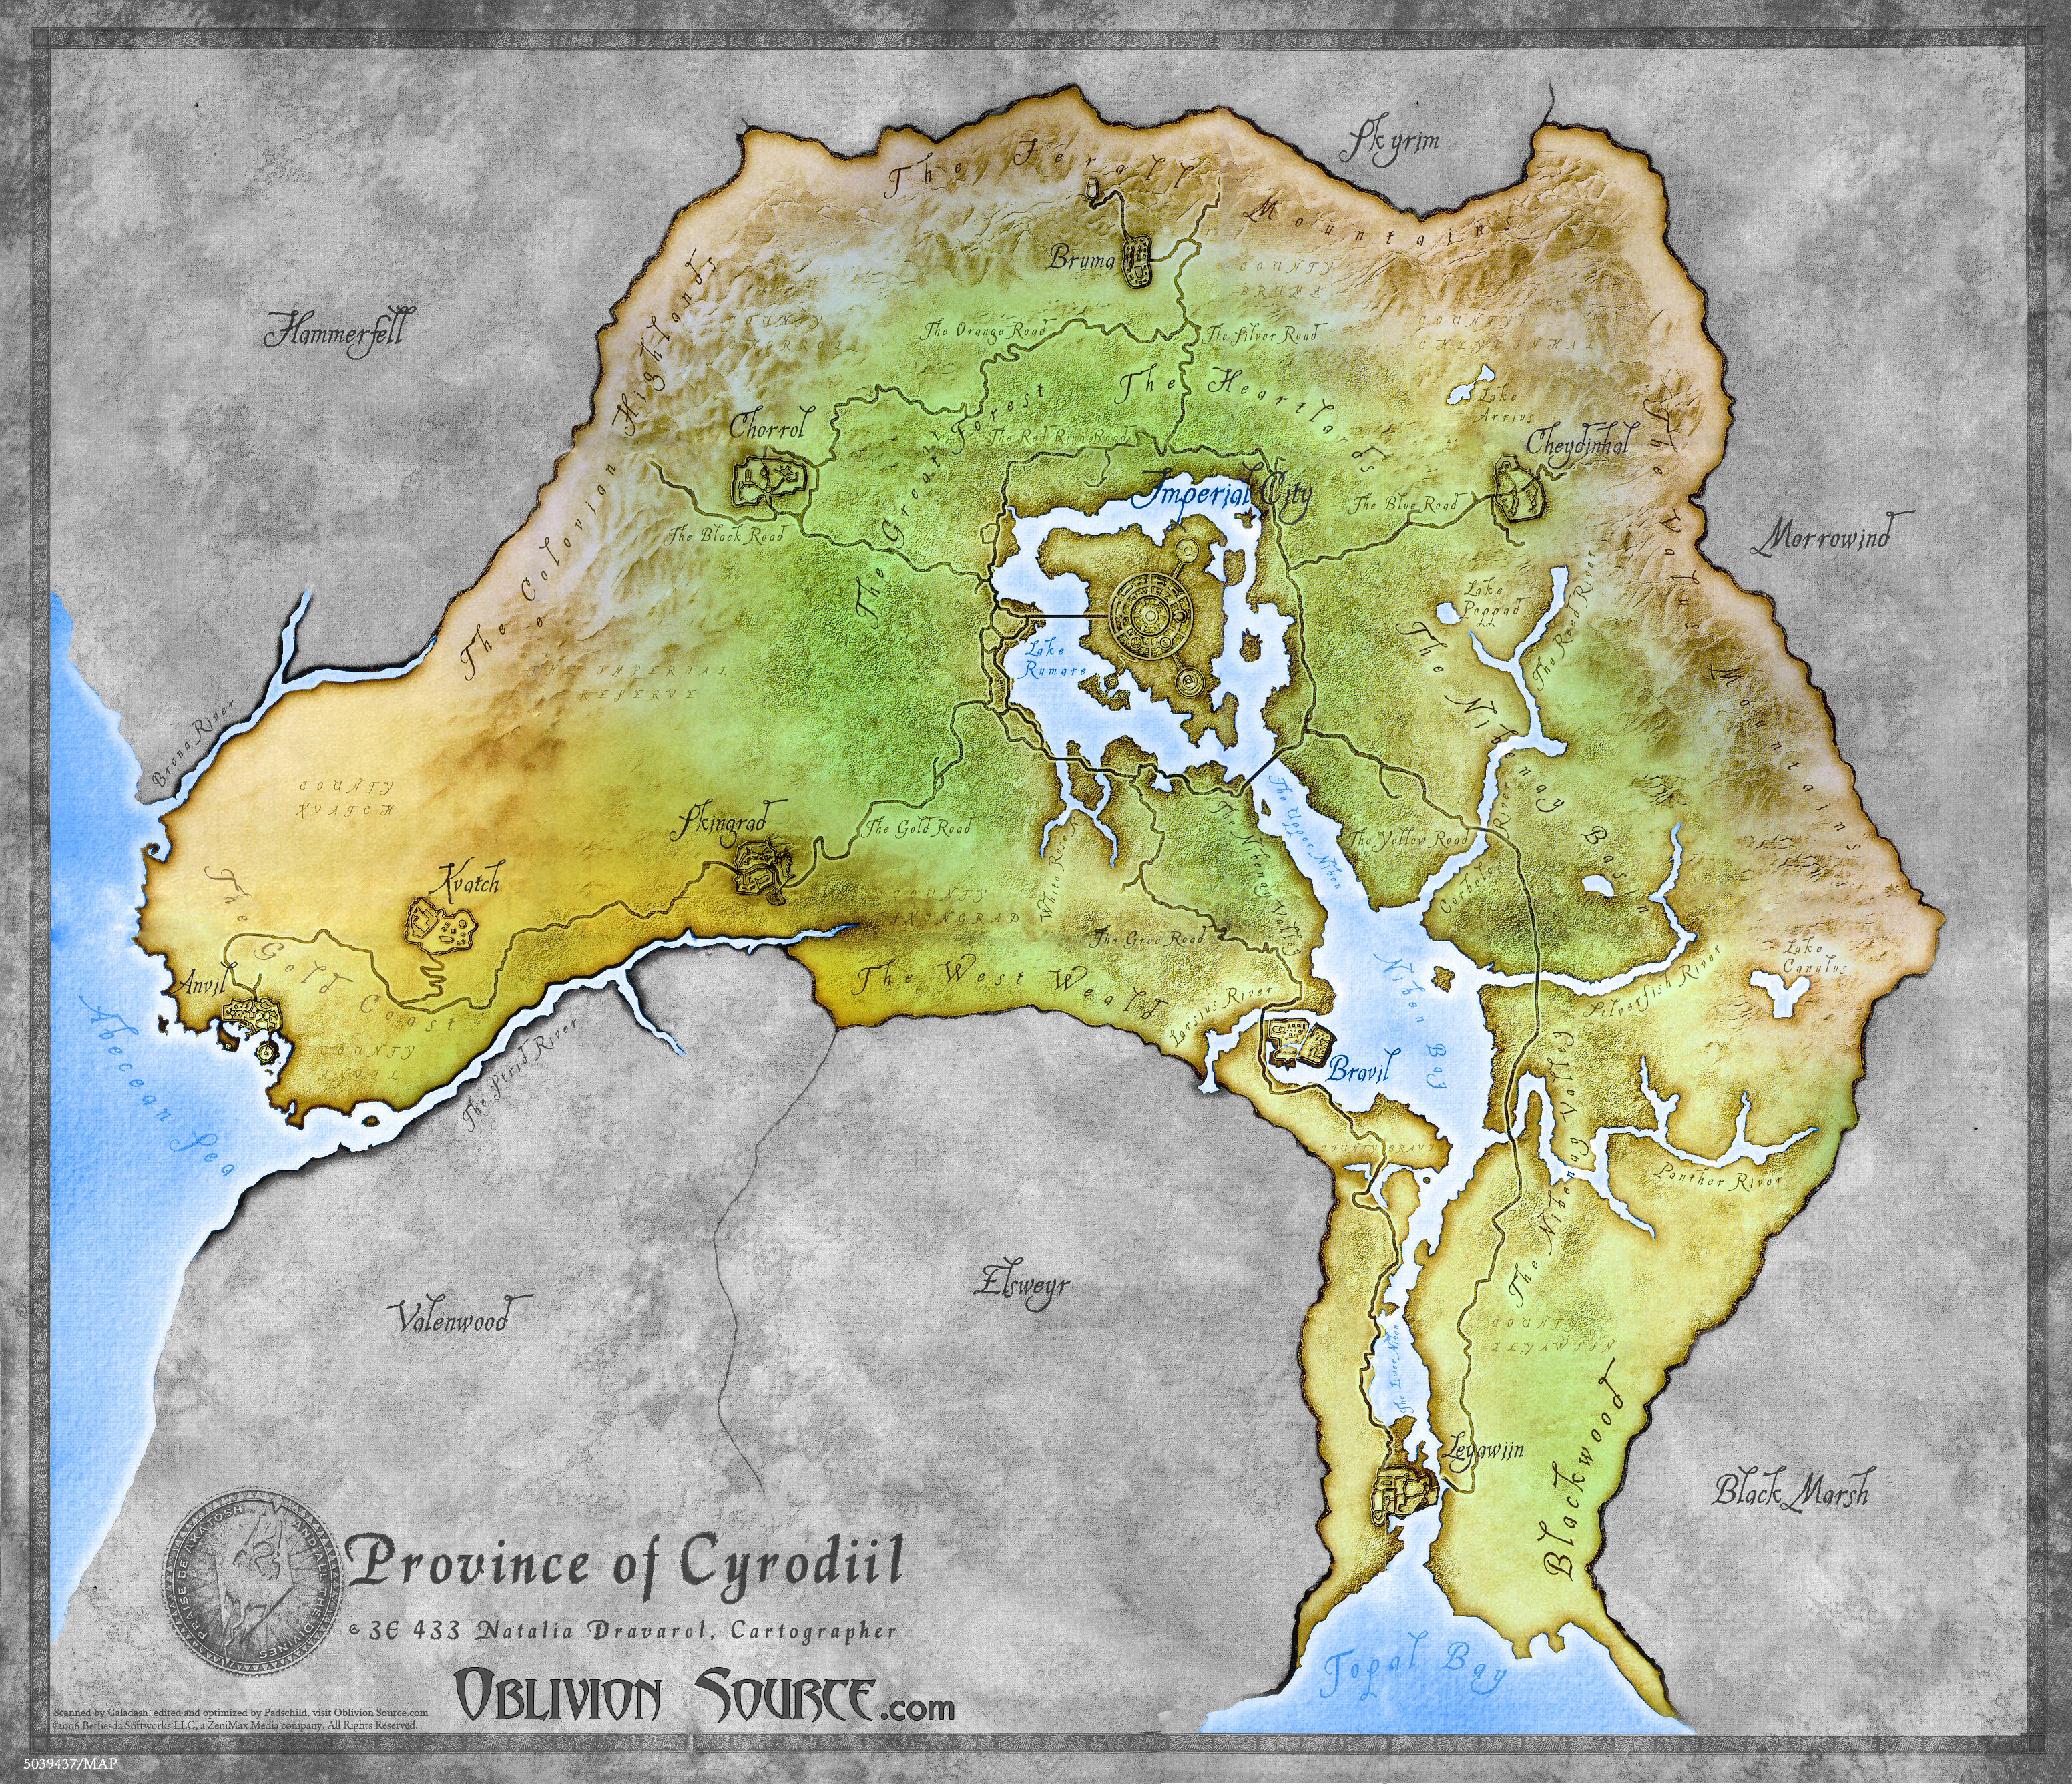 Oblivion mod unlocate cities twenty sided well its big for a computer game world anyway its portrayed as a continent the map makes it look like one and the inhabitants talk about it as if it gumiabroncs Gallery